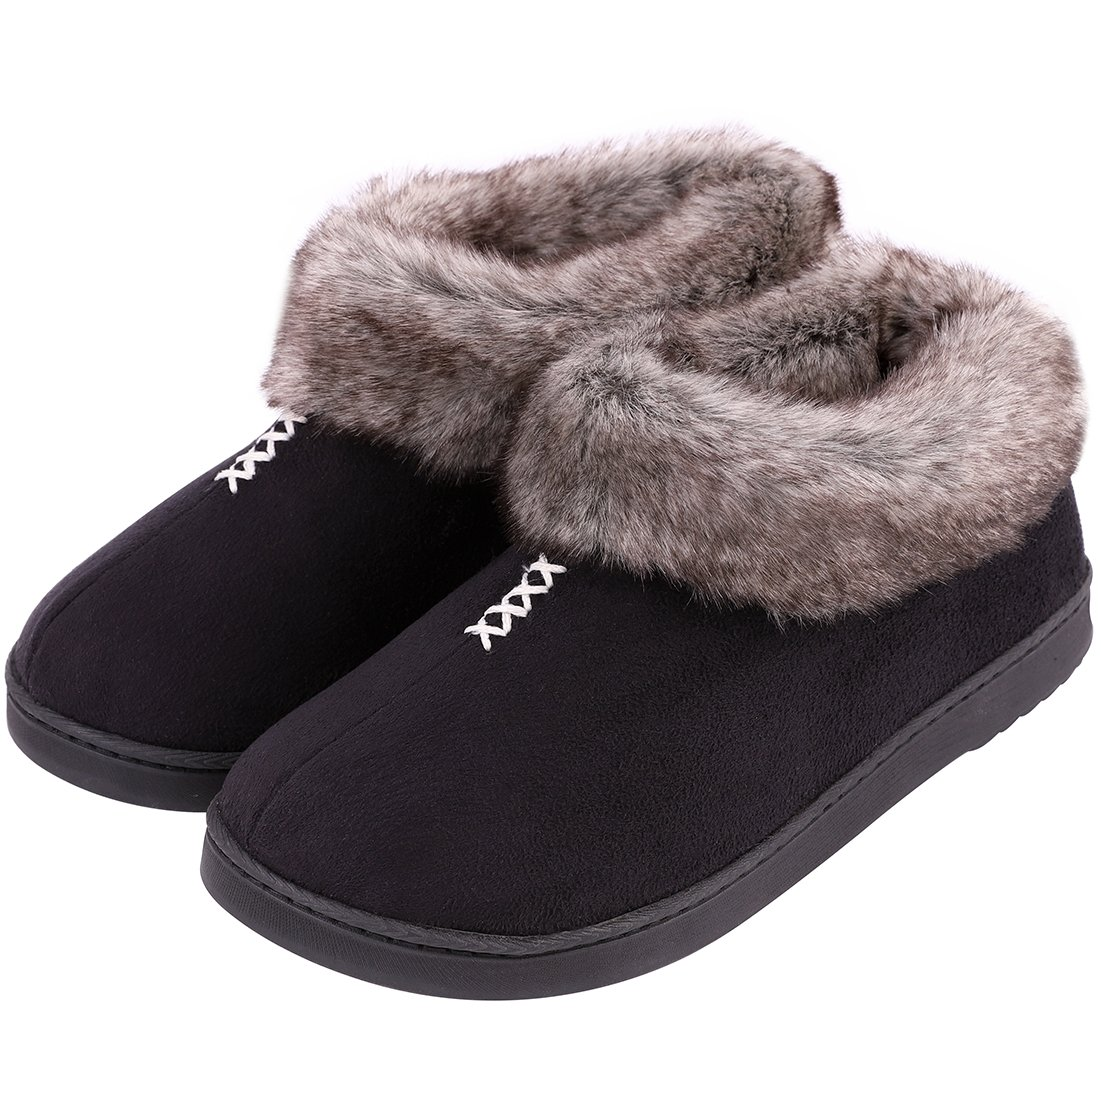 Women's Cozy Memory Foam Slippers Fluffy Micro Suede Faux Fur Fleece Lined House Shoes with Non Skid Indoor Outdoor Sole (Medium / 8 B(M) US, Black)